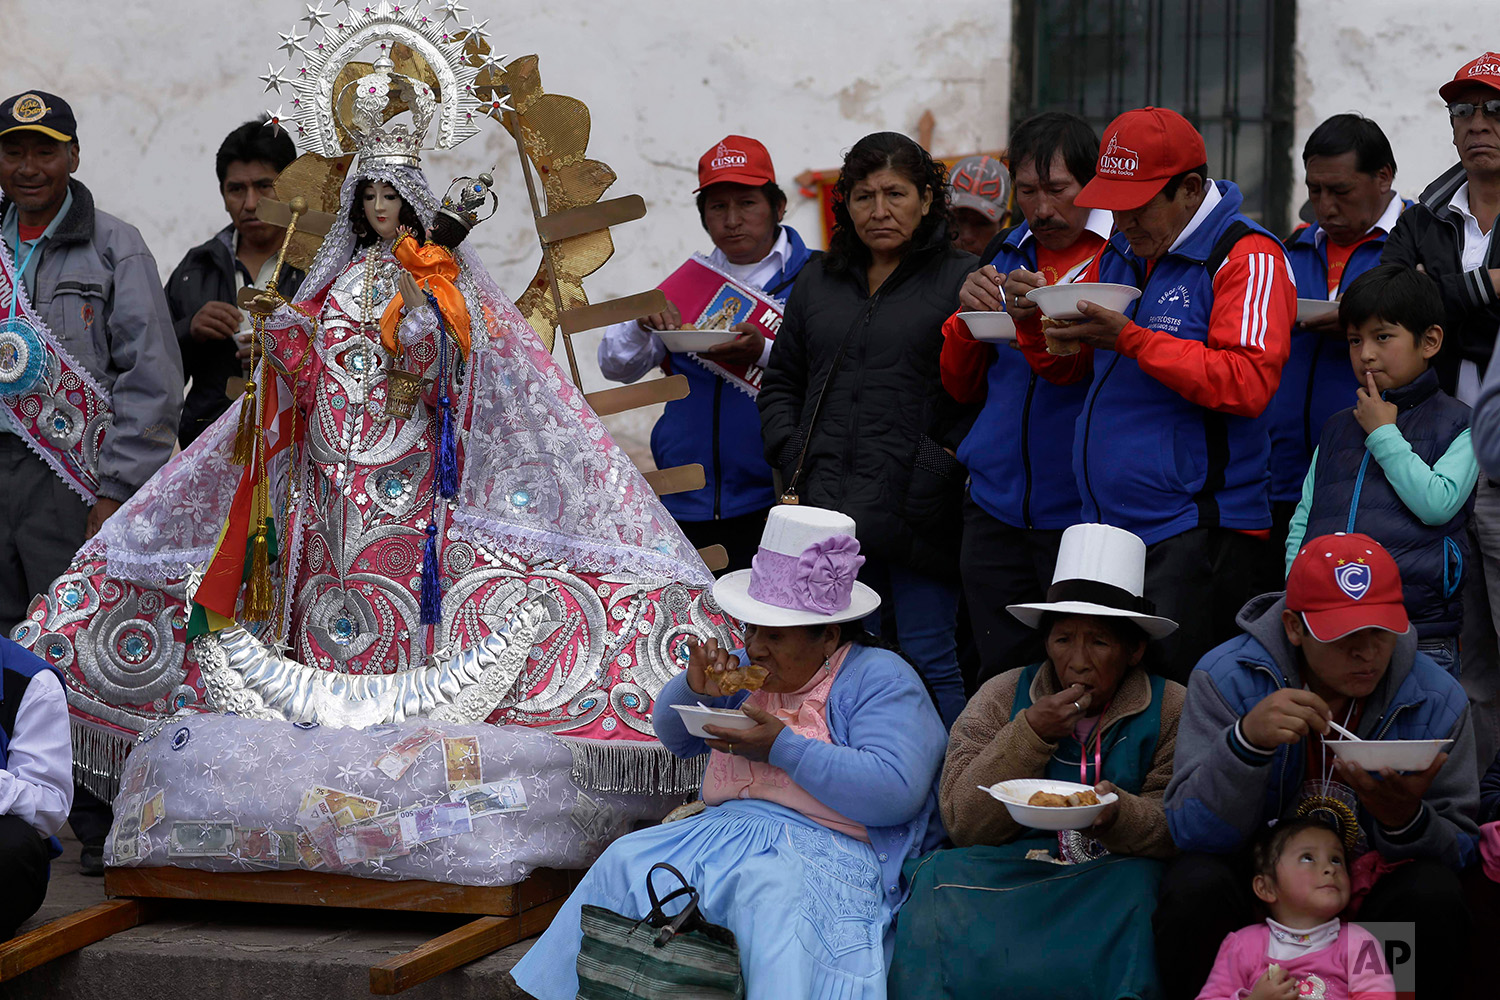 """""""Cargadores"""" or male carriers and devotees lunch on free bowls of beef and wheat soup during a pause in the religious procession honoring Our Lady of Copacabana, in Cuzco, Peru, Aug. 5, 2018. (AP Photo/Martin Mejia)"""